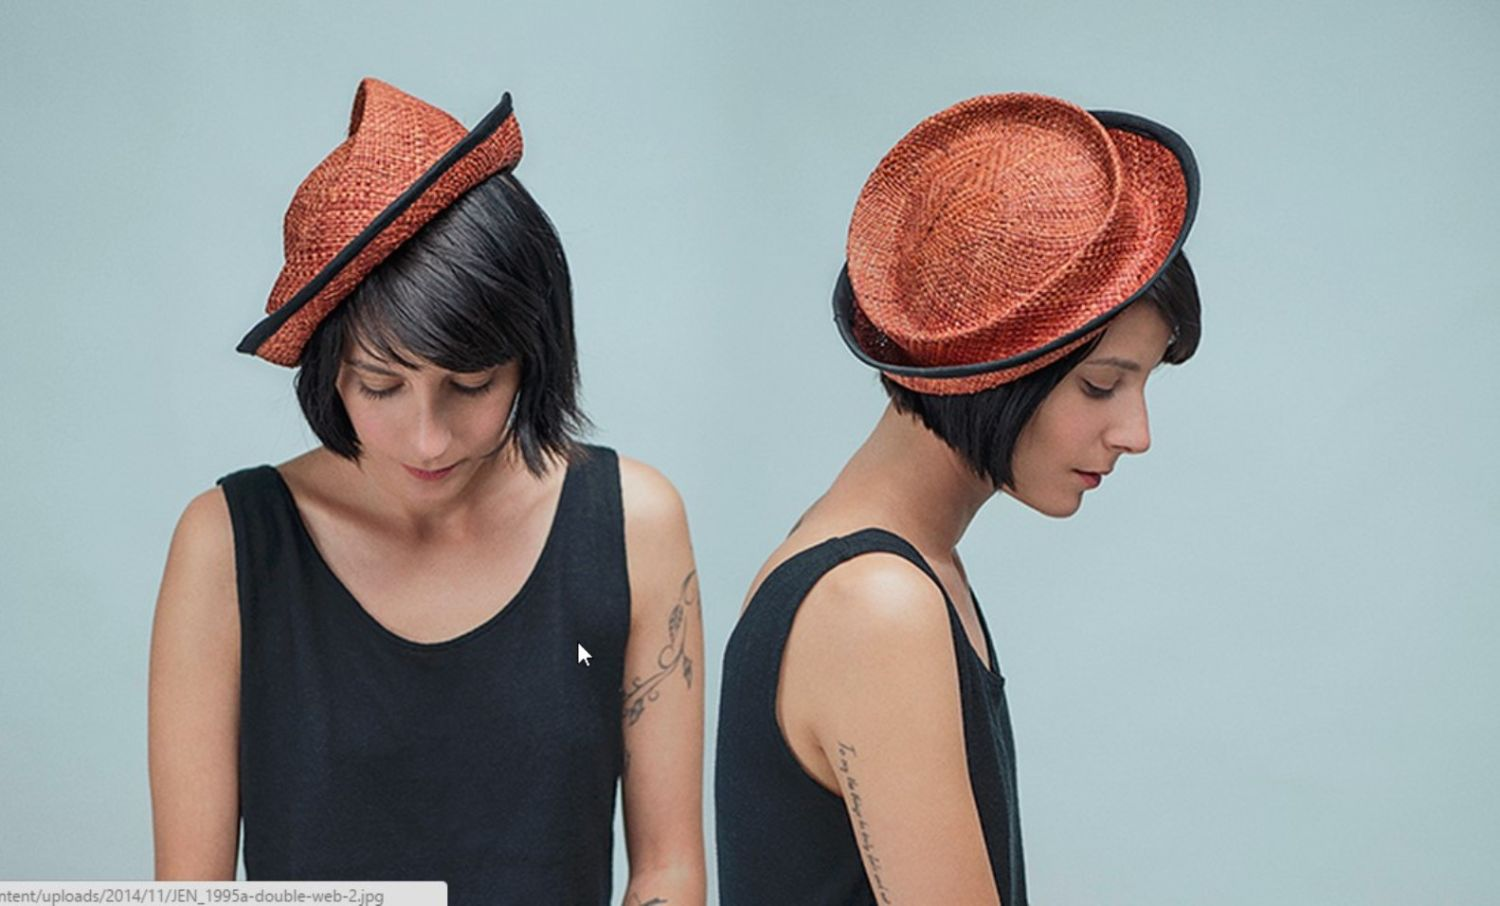 A design mistake led Cohen to an experimental hat of seagrass straw. Photo by Jennie Barst